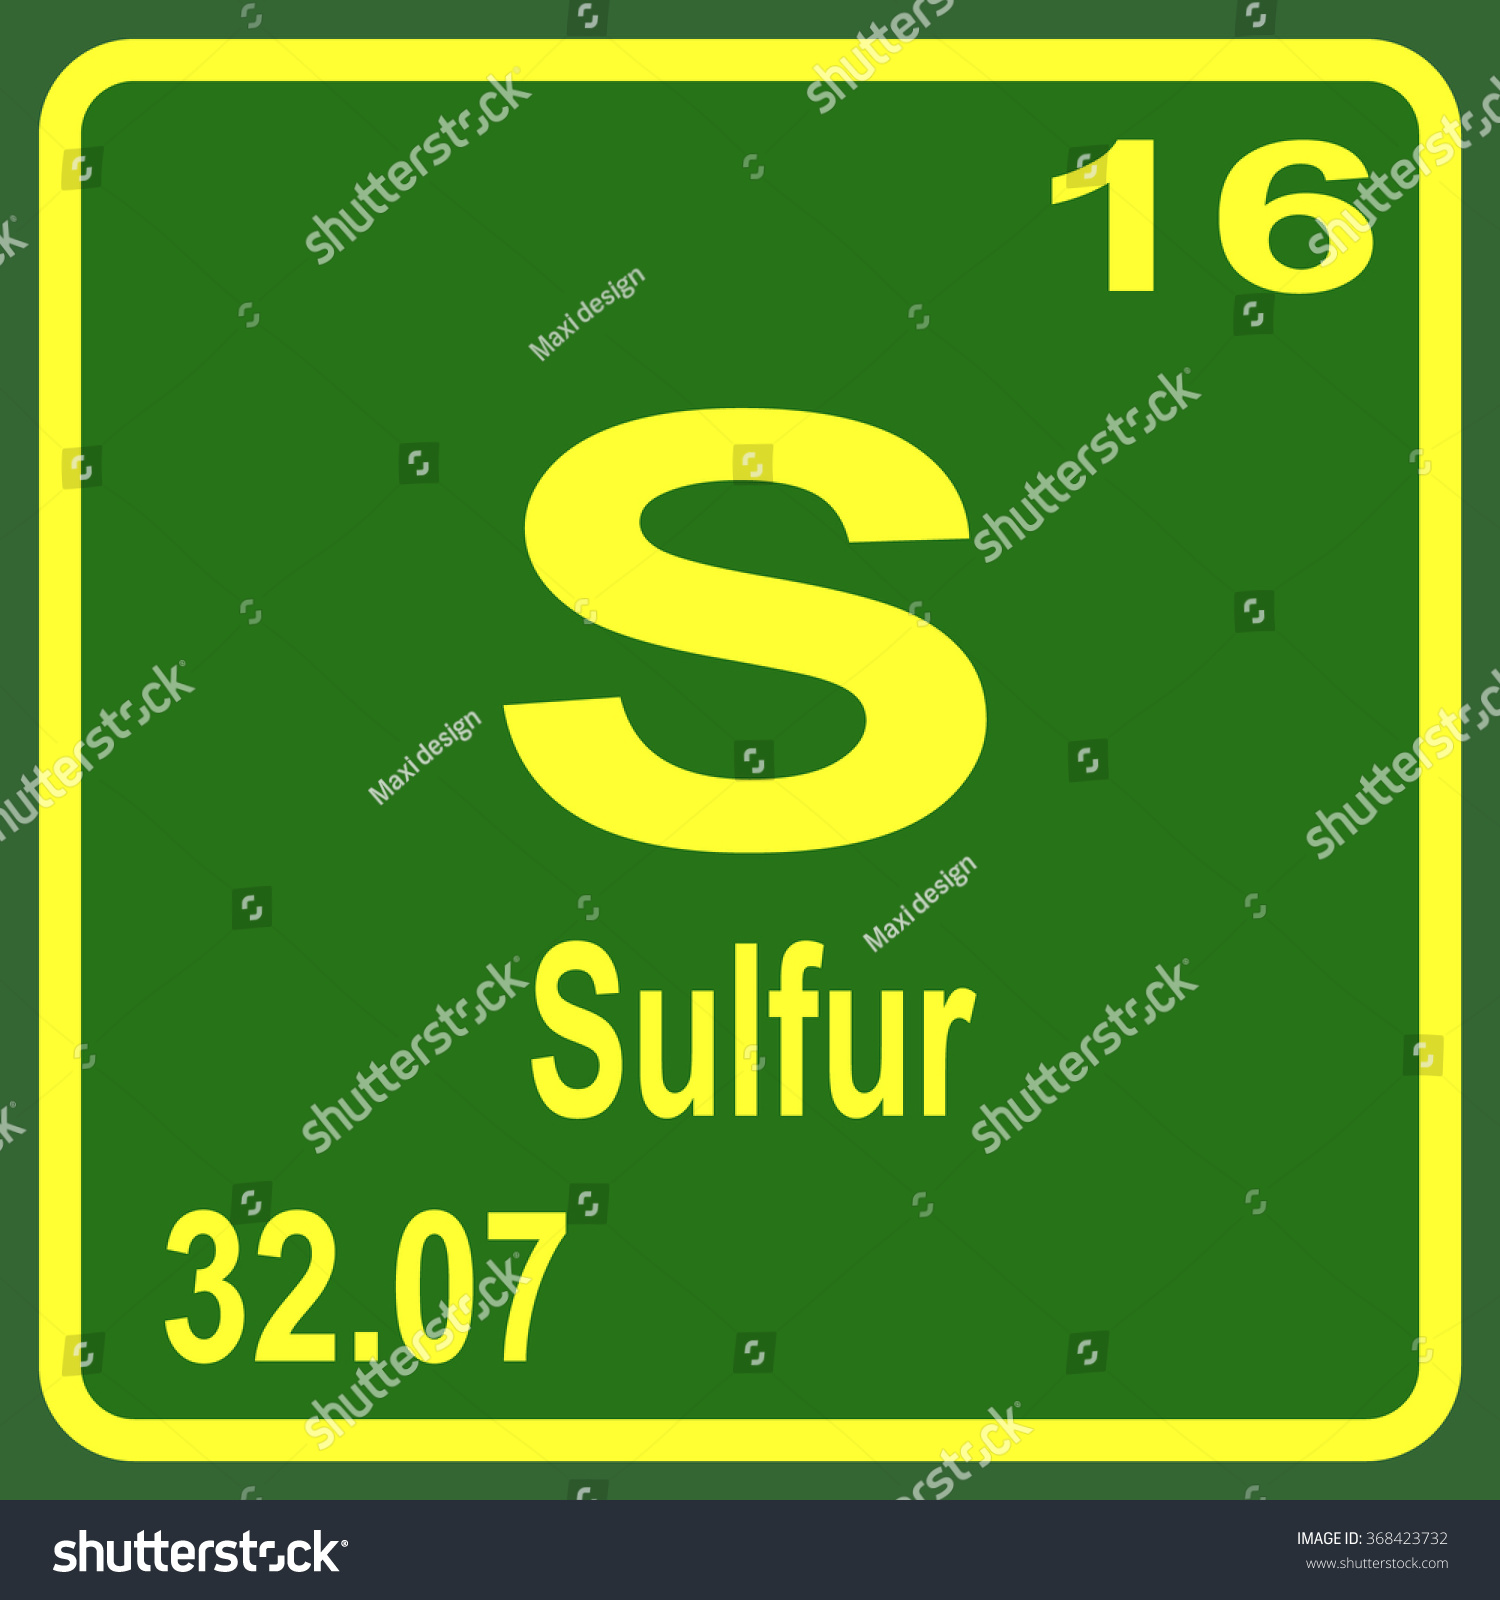 Periodic table elements sulfur stock vector 368423732 shutterstock periodic table of elements sulfur gamestrikefo Image collections